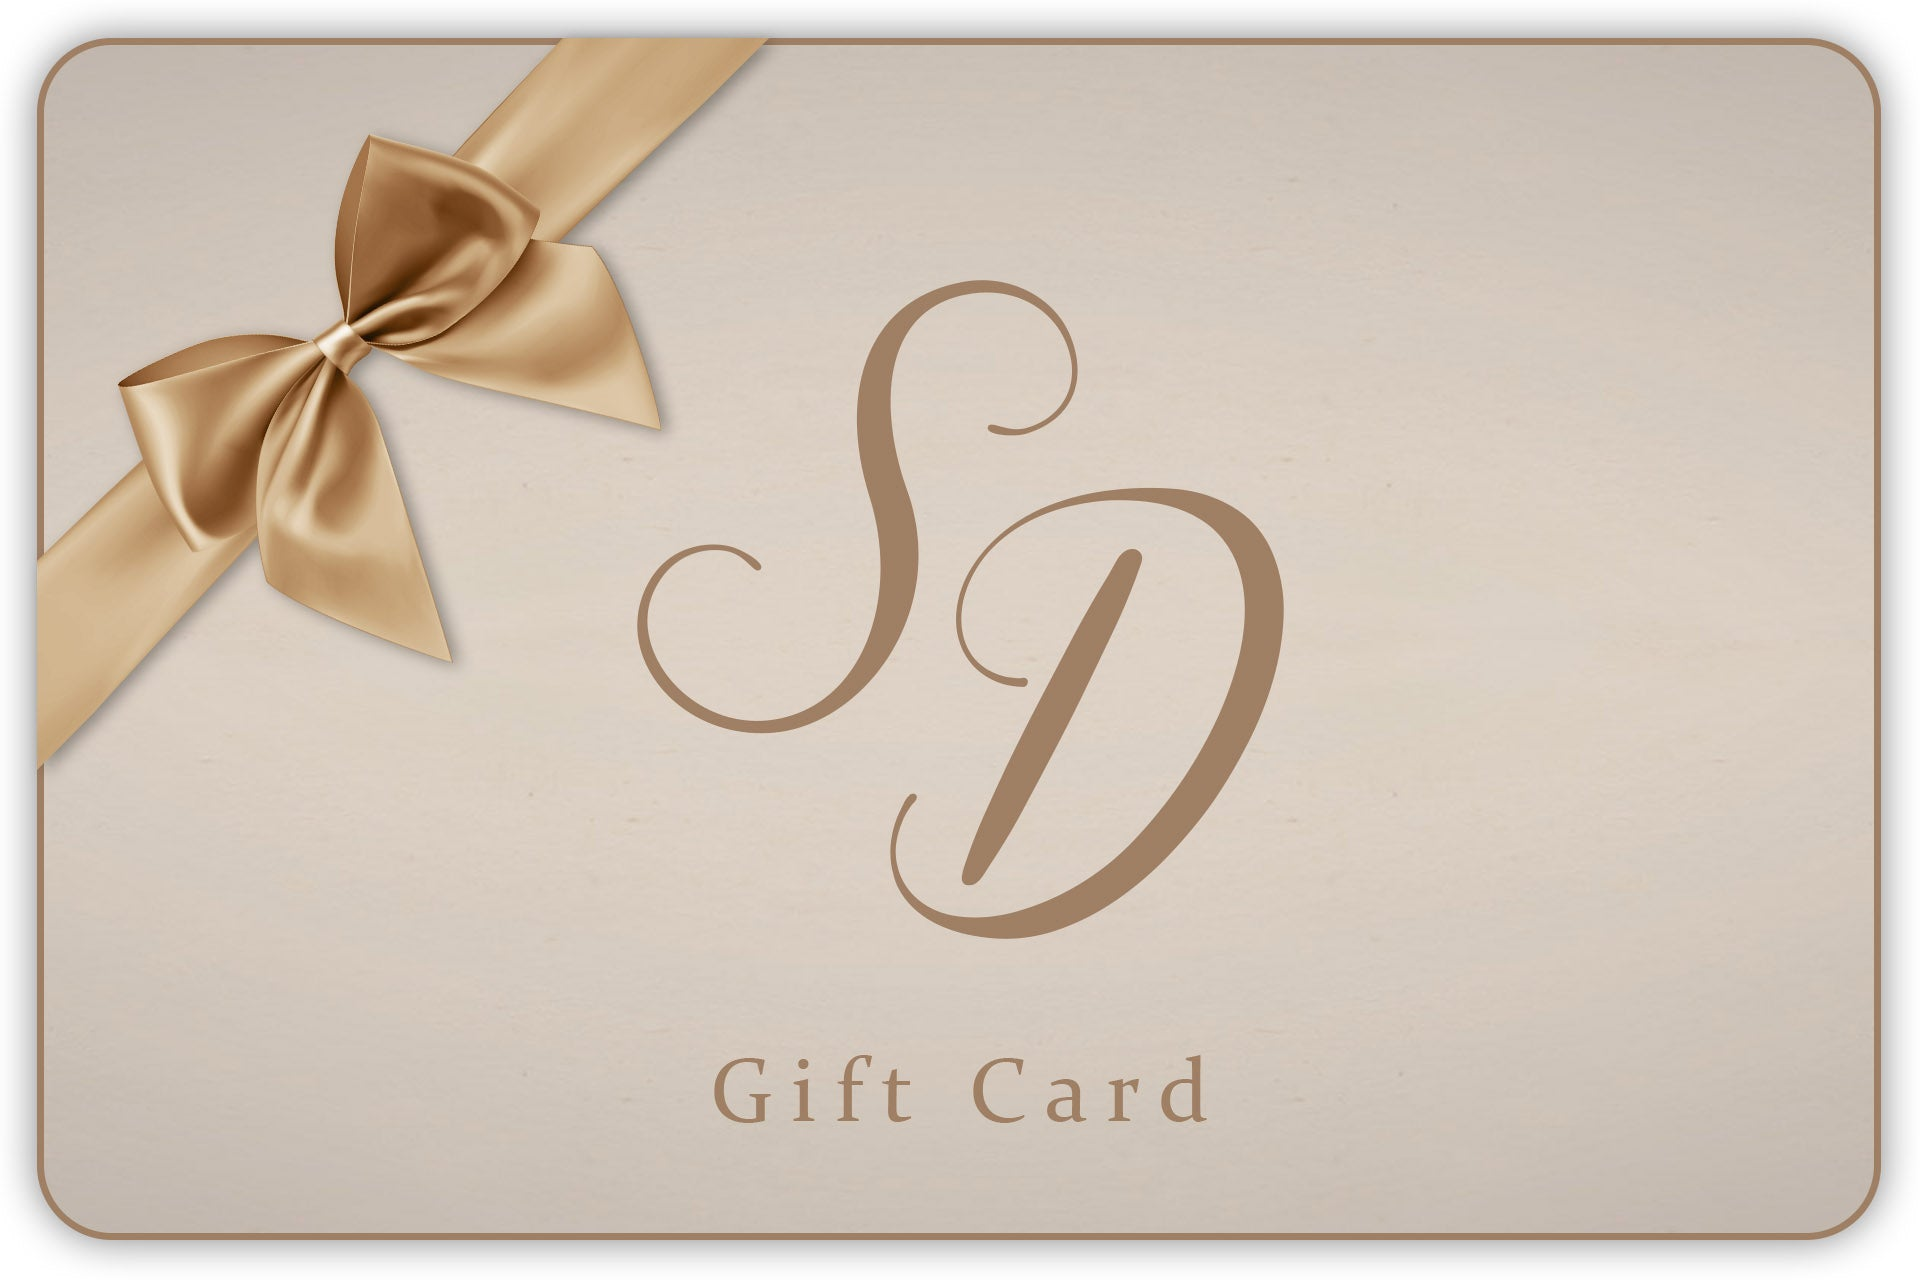 Sincerely Danicka Gift Card